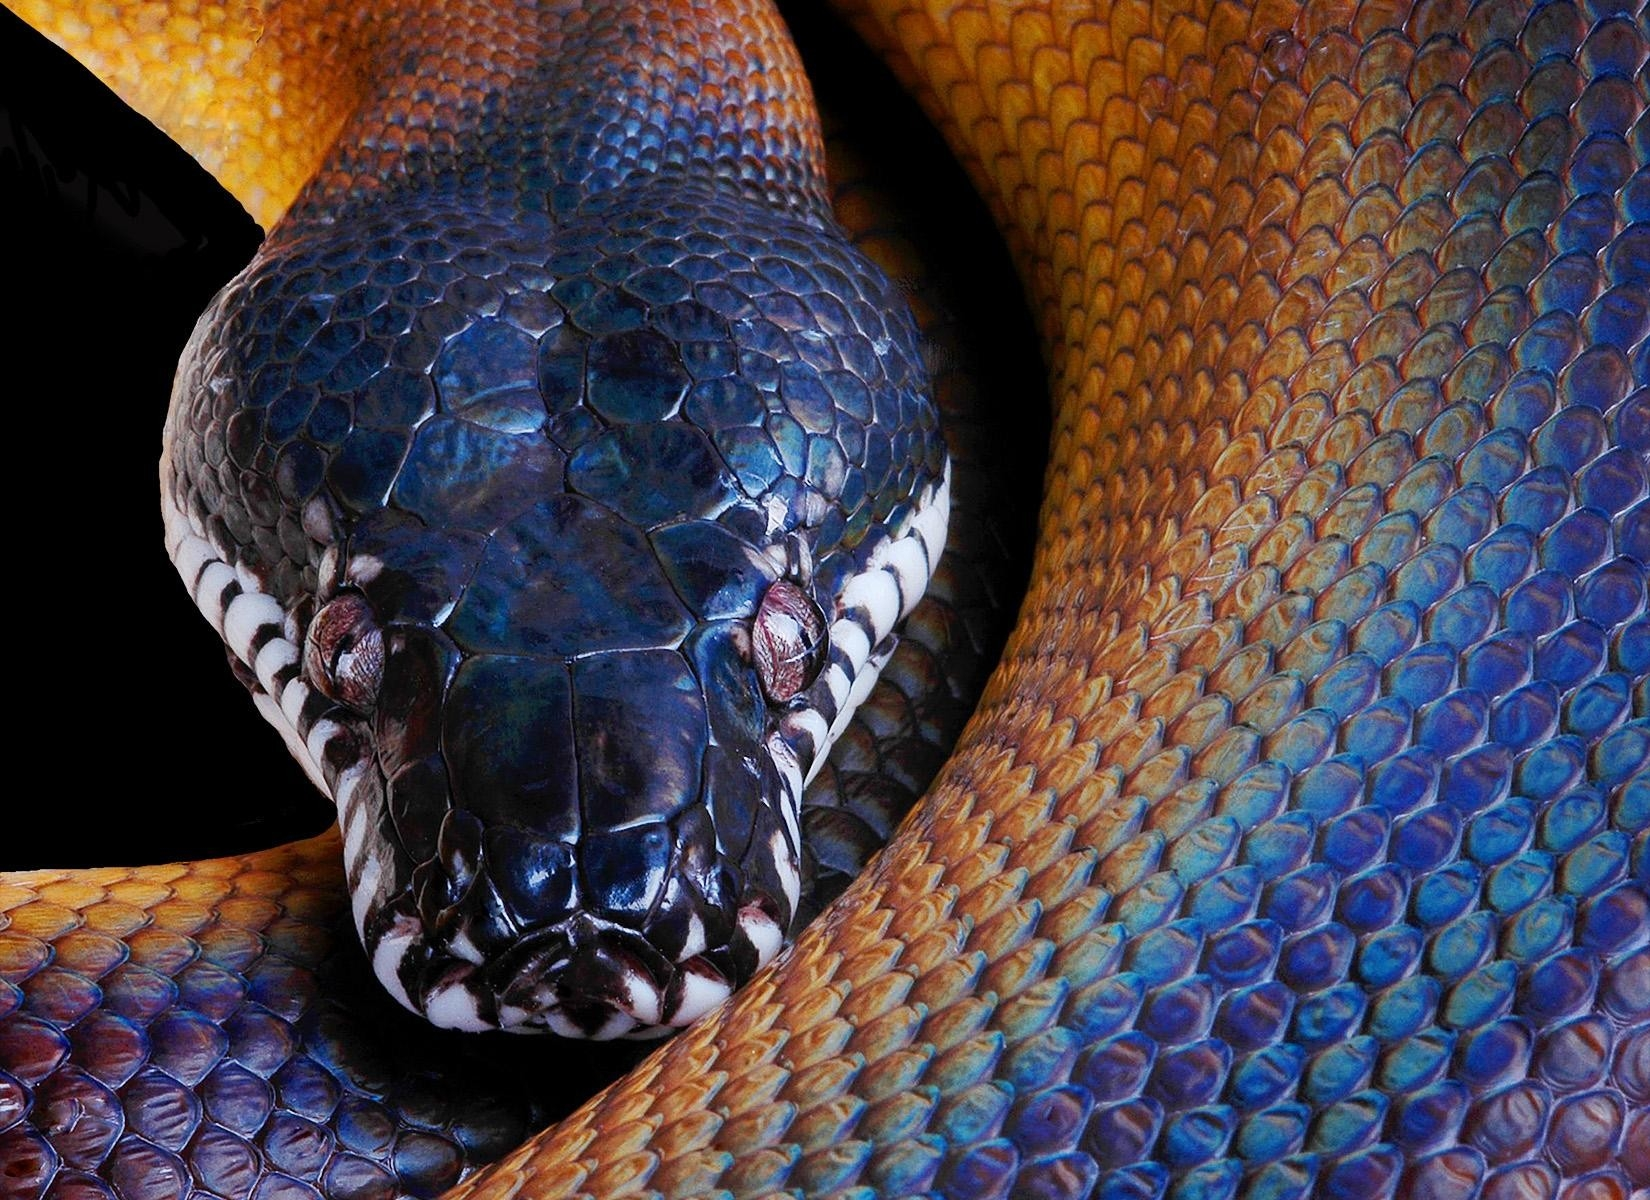 144749 download wallpaper Animals, Snake, Python, Color, Head screensavers and pictures for free